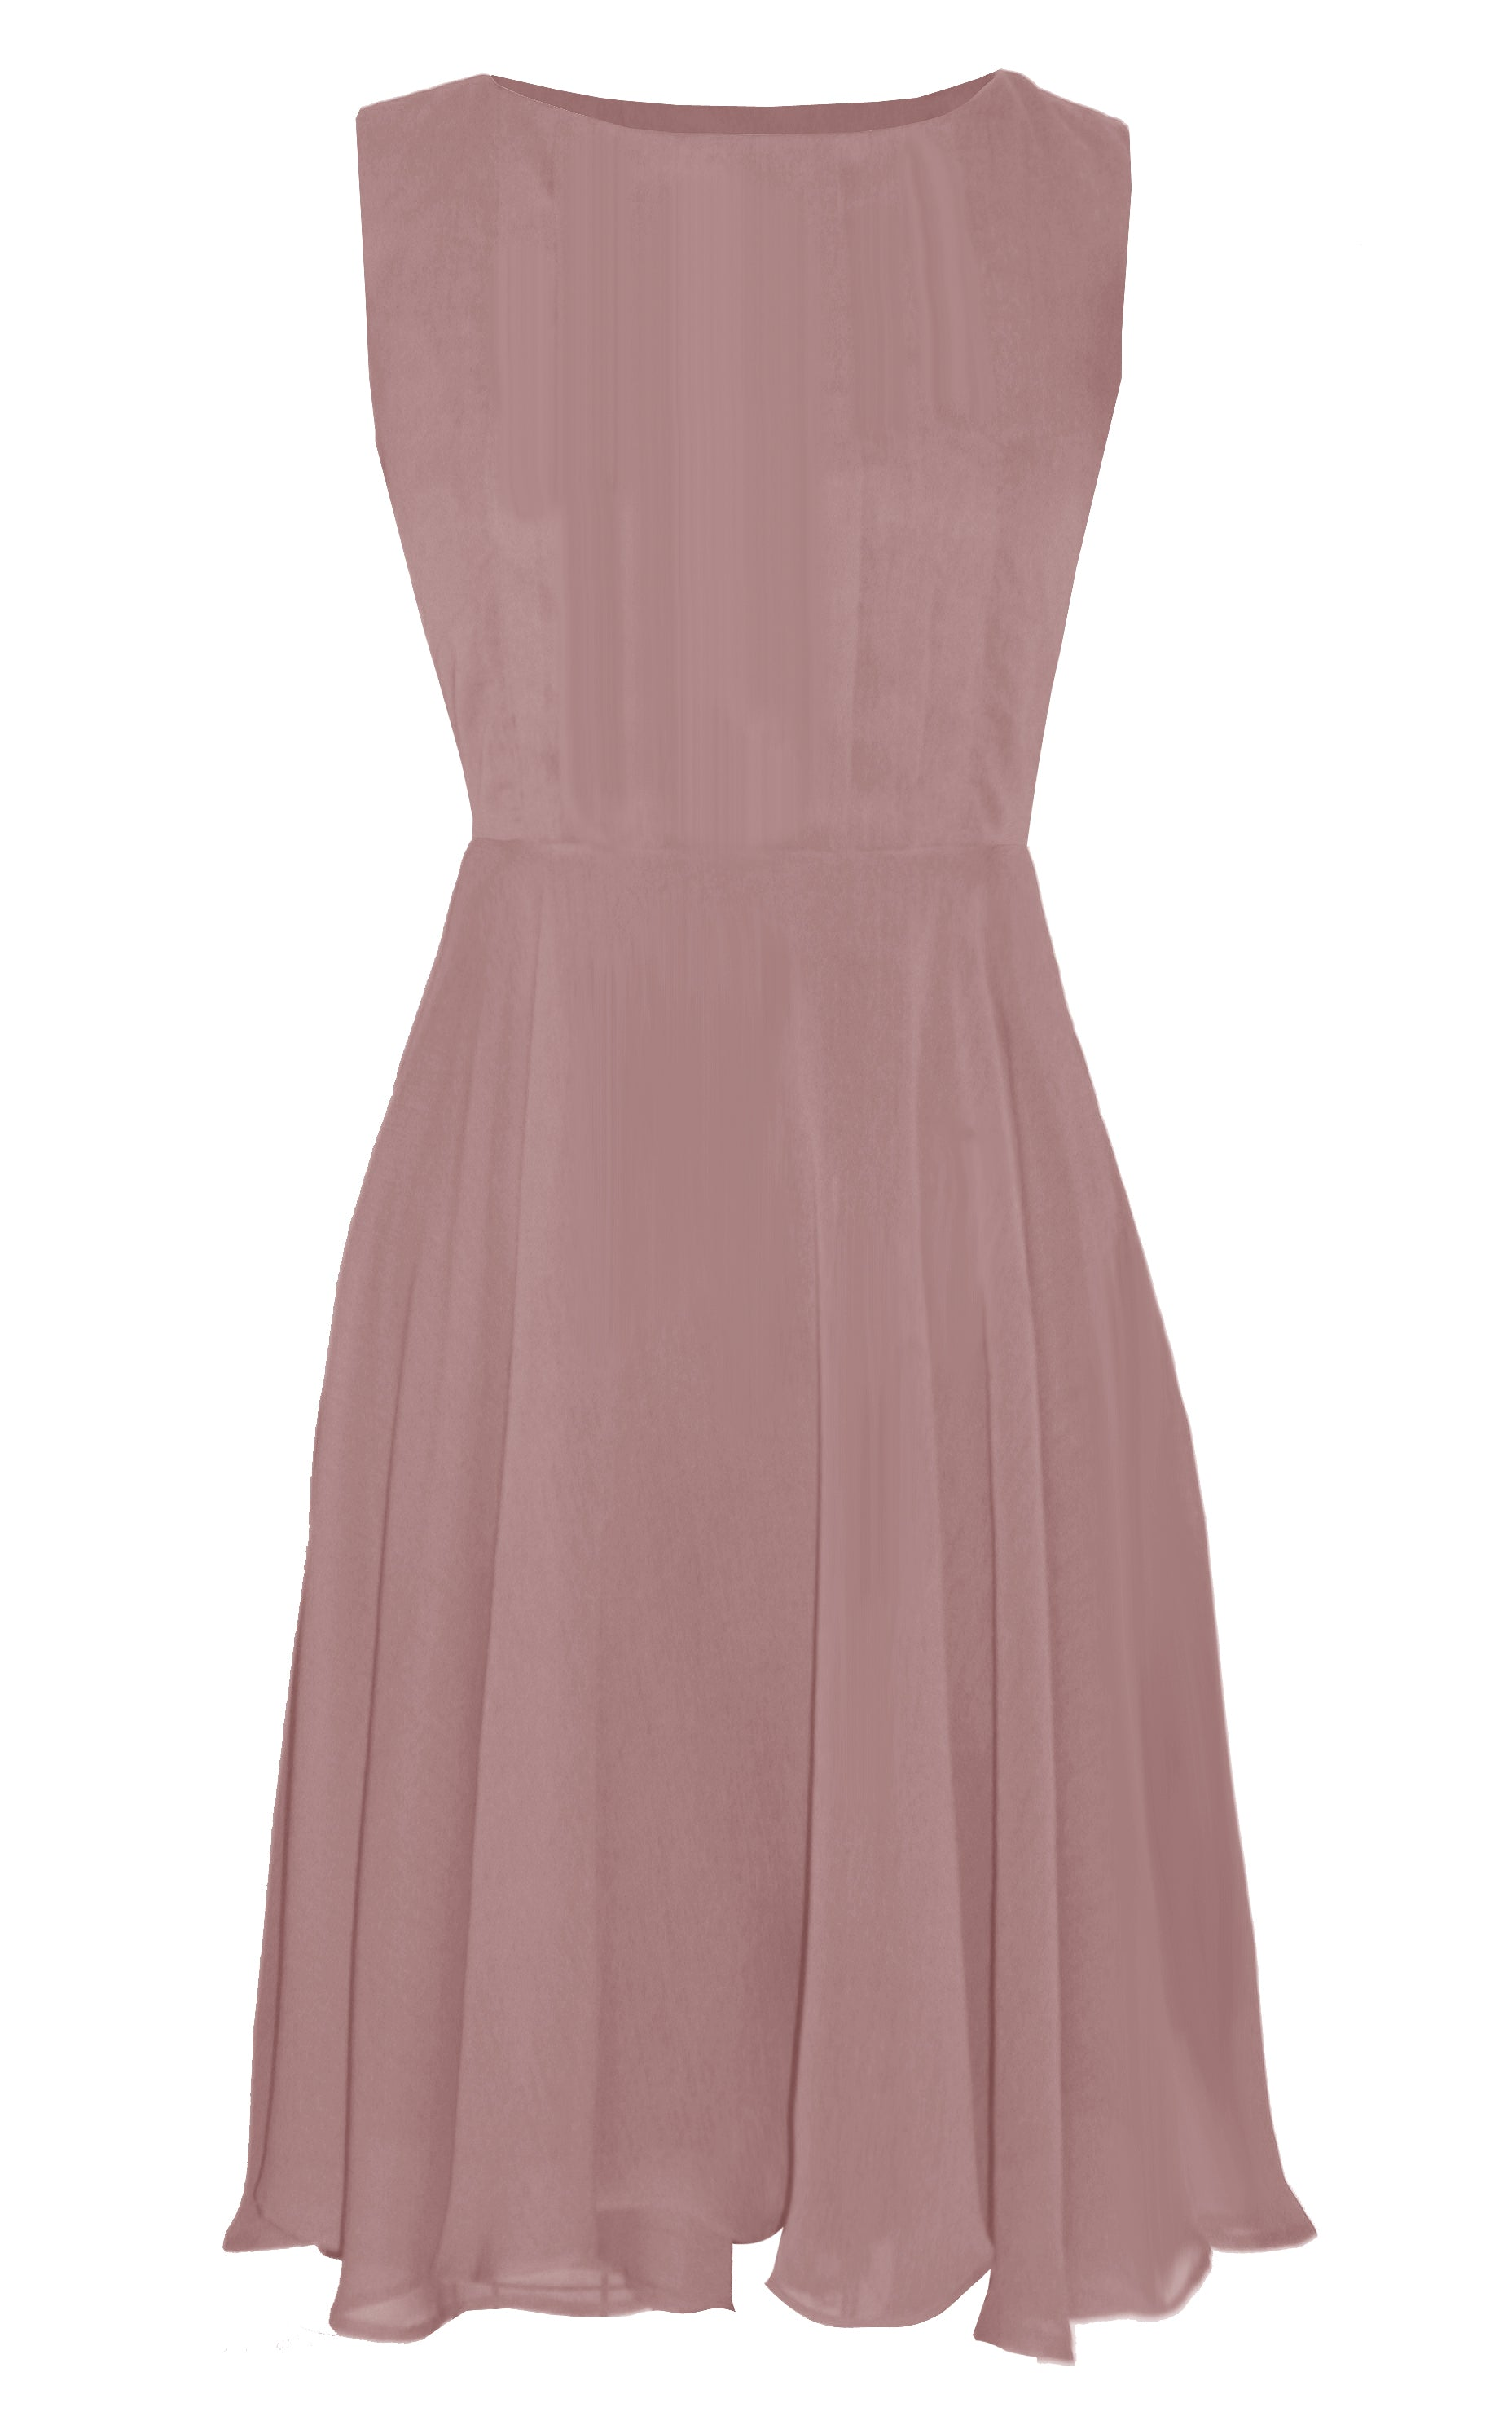 Lola Old Rose Chiffon Dress